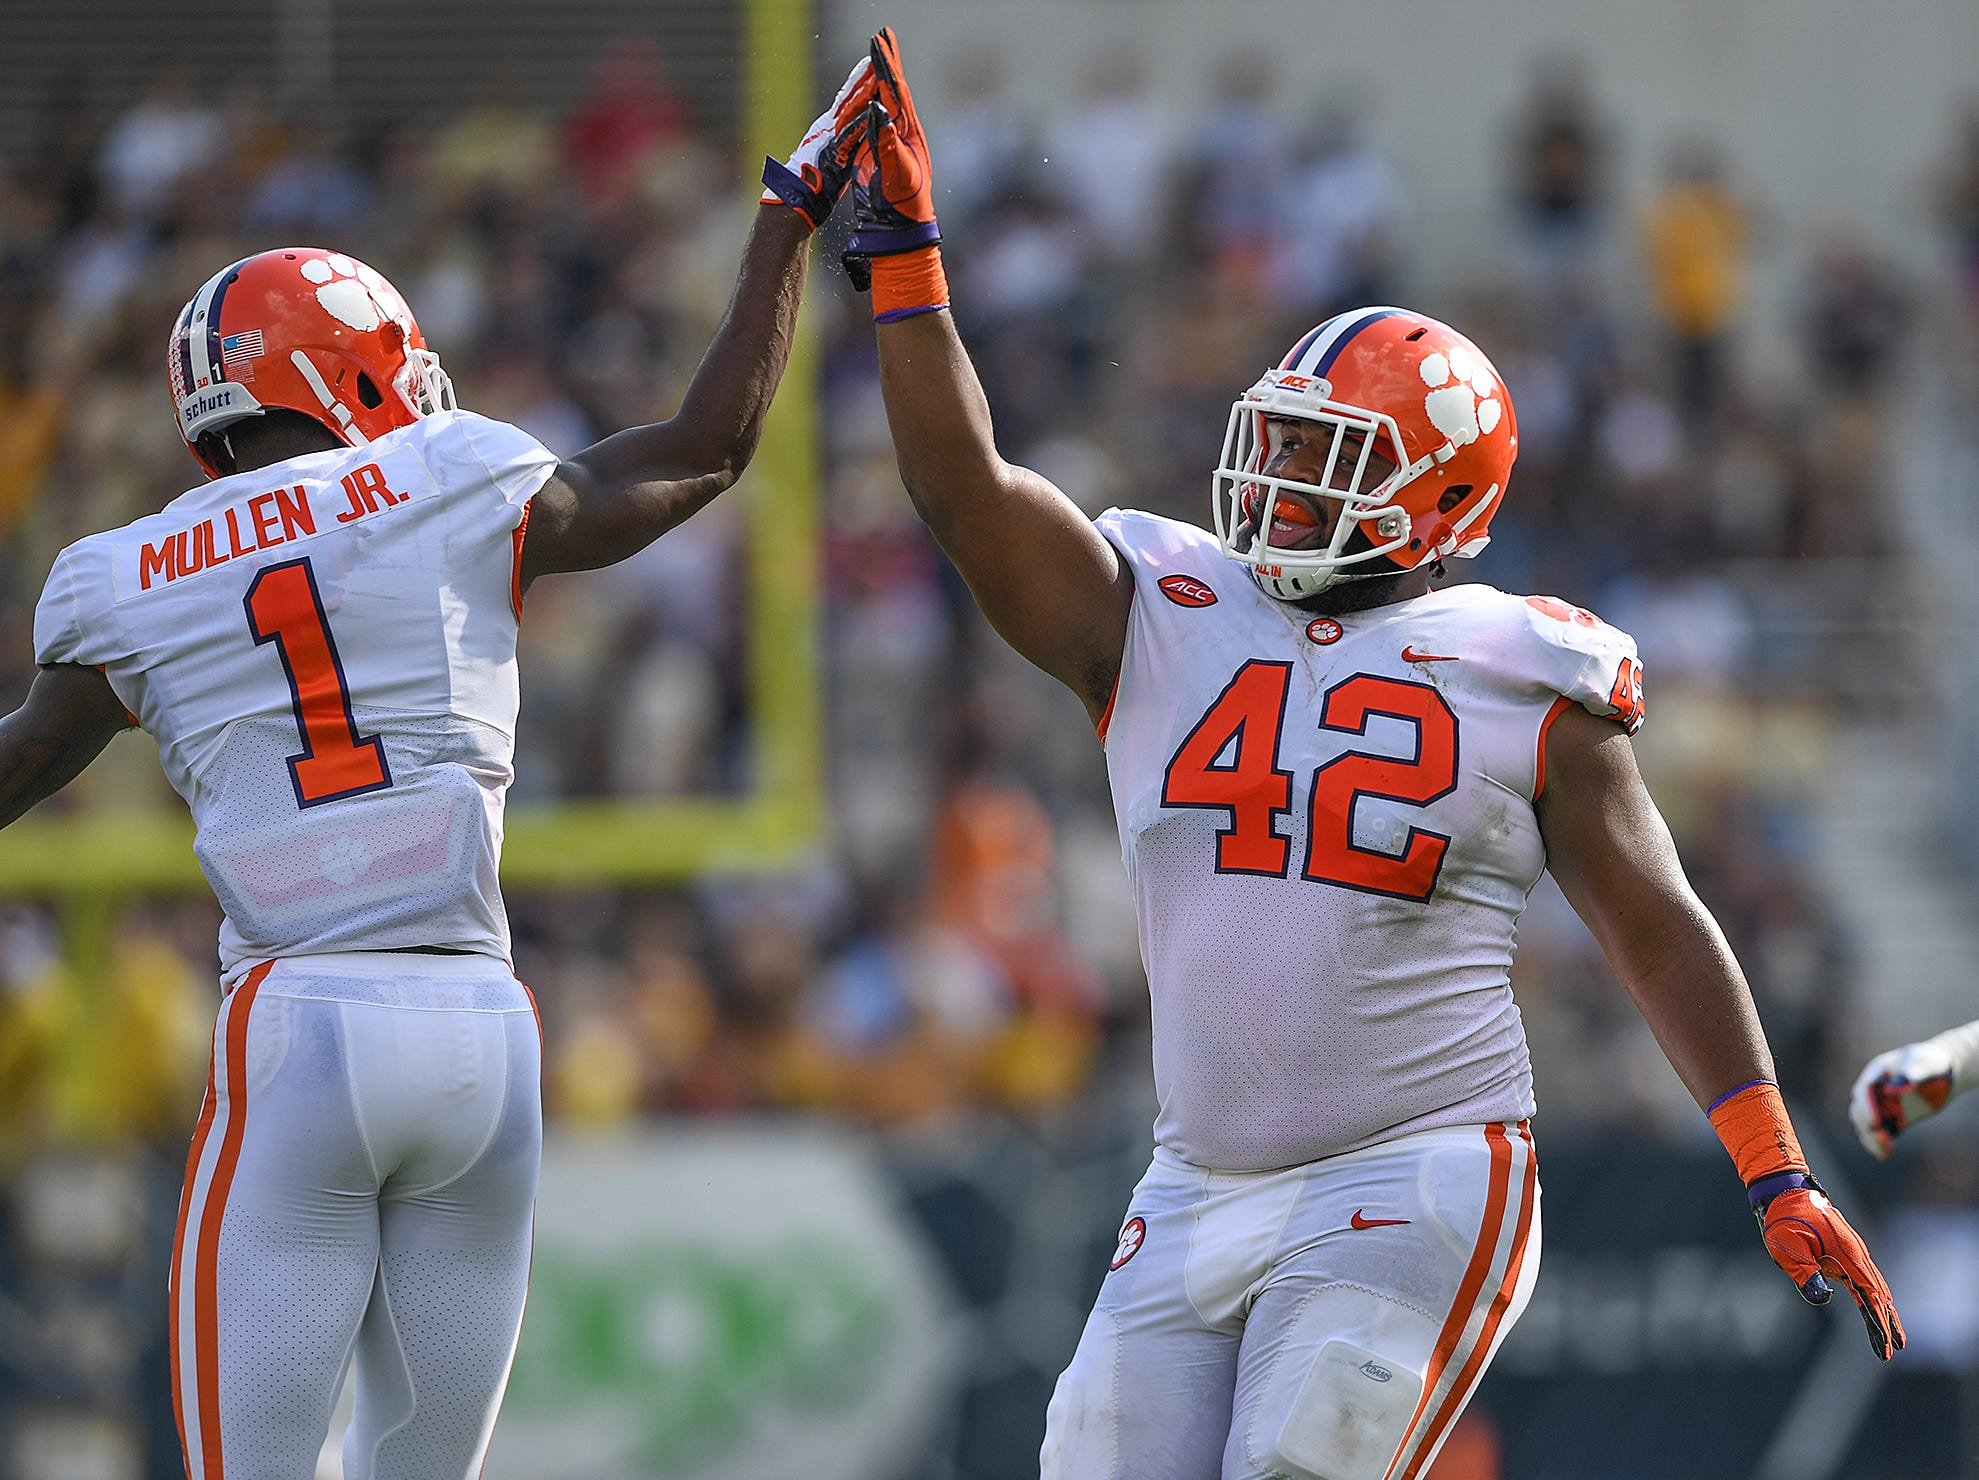 Clemson cornerback Trayvon Mullen (1)  and defensive lineman Christian Wilkins (42) celebrate a defensive stop against Georgia Tech during the 2nd quarter at Georgia Tech's Bobby Dodd Stadium Saturday, September 22, 2018.